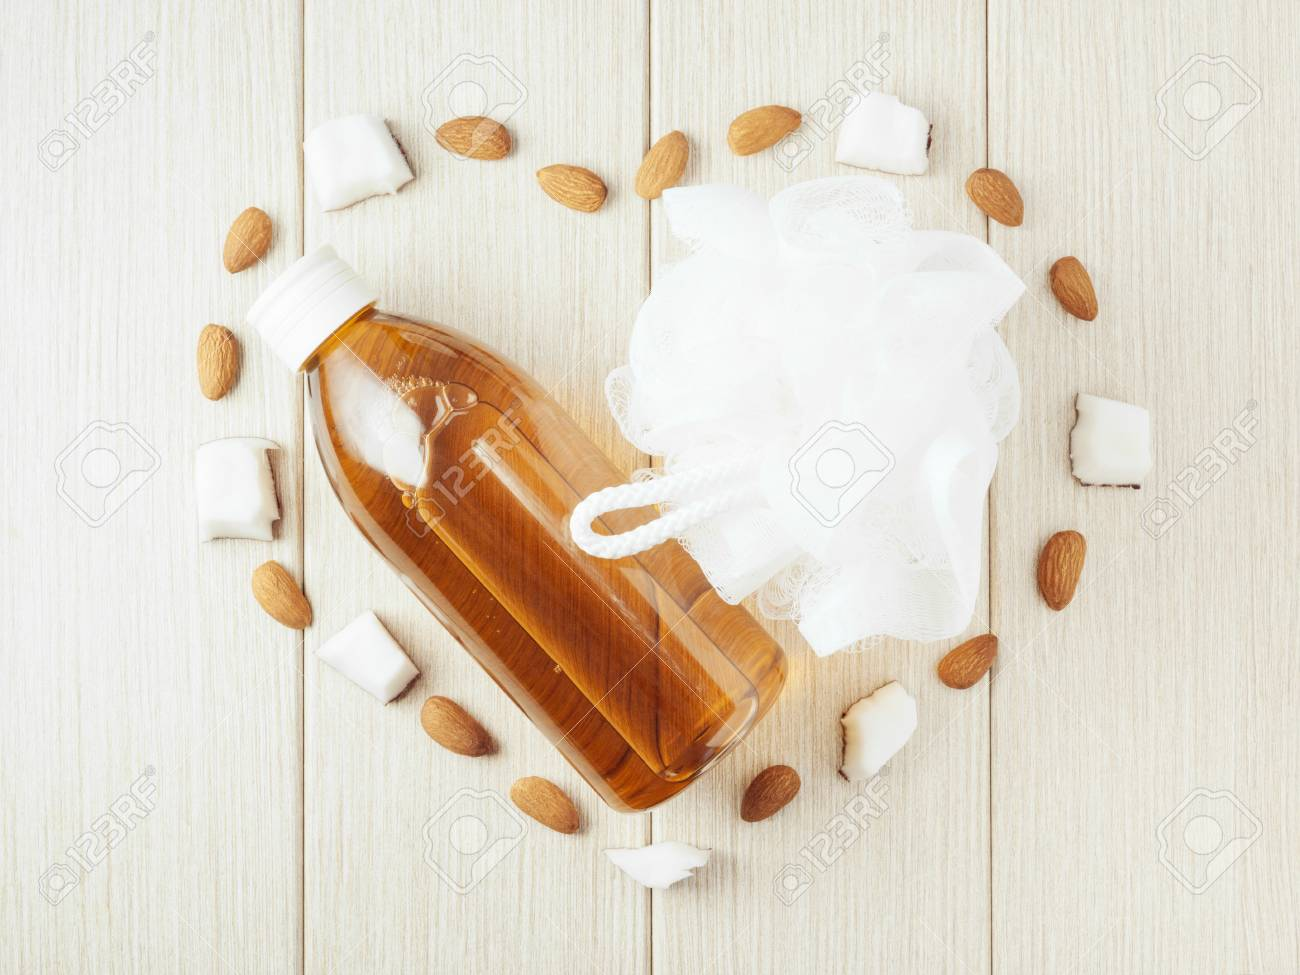 Composition with plastic bottle and mesh shower sponge for body care and beauty products. Beautiful background with almond and coconut. - 112033054